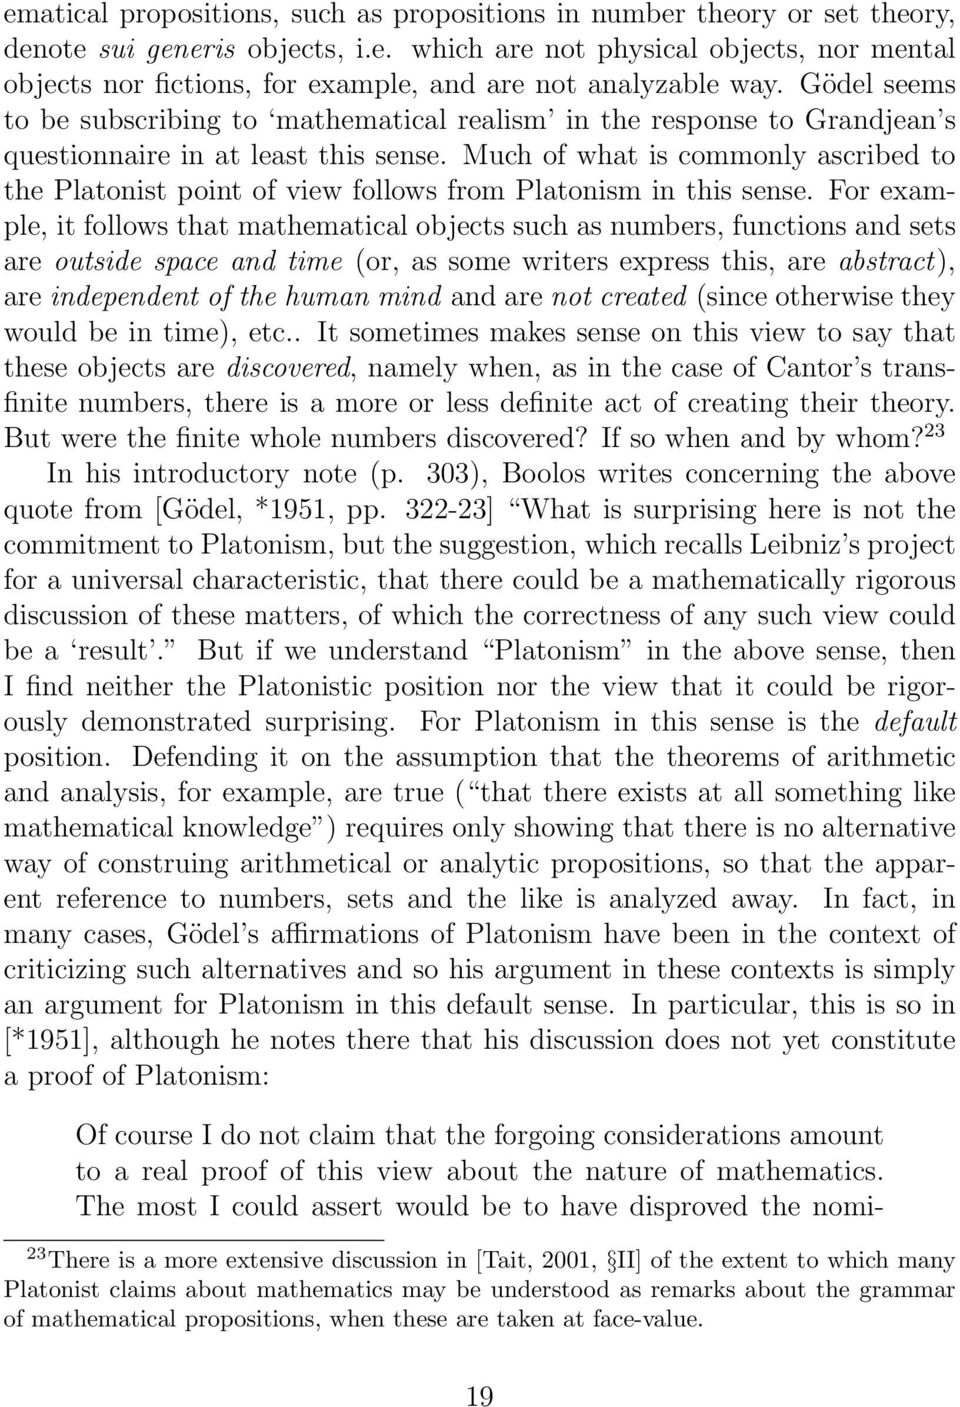 Much of what is commonly ascribed to the Platonist point of view follows from Platonism in this sense.